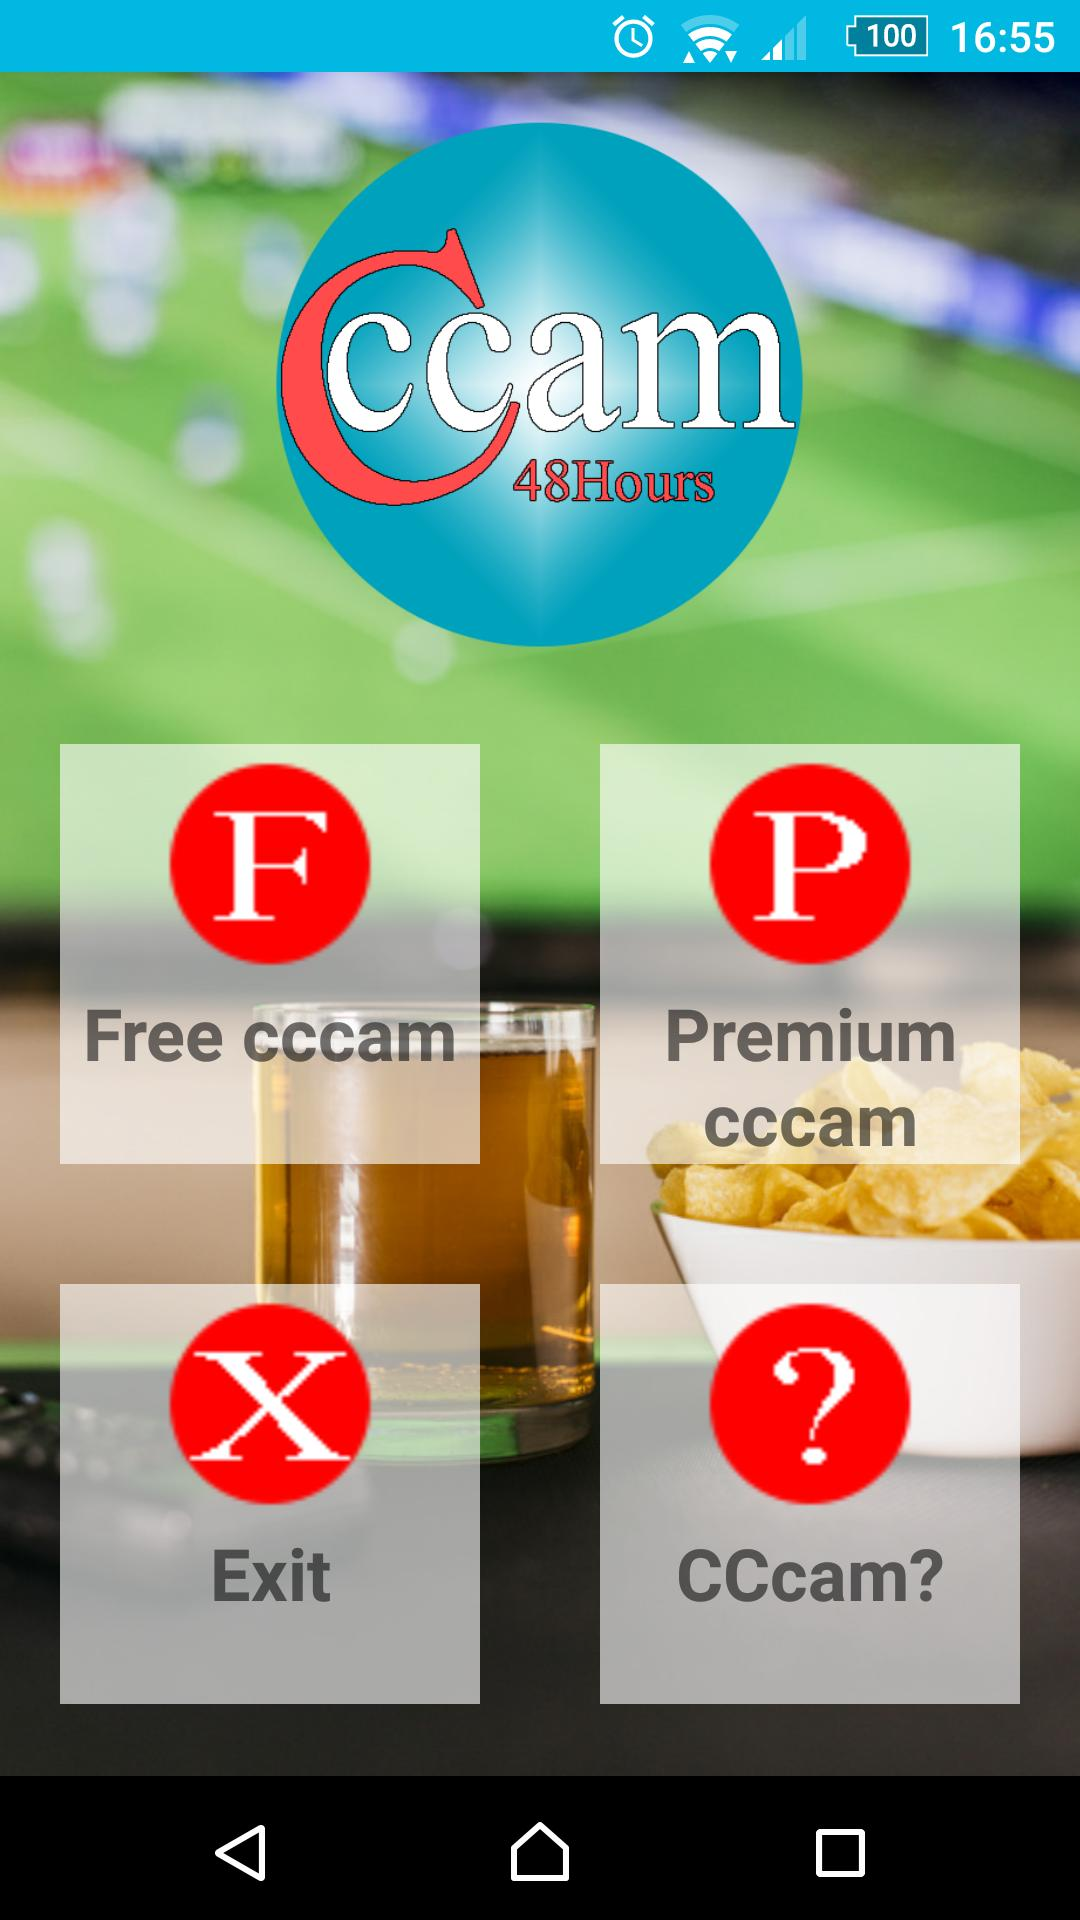 Best cccam free 48H for Android - APK Download